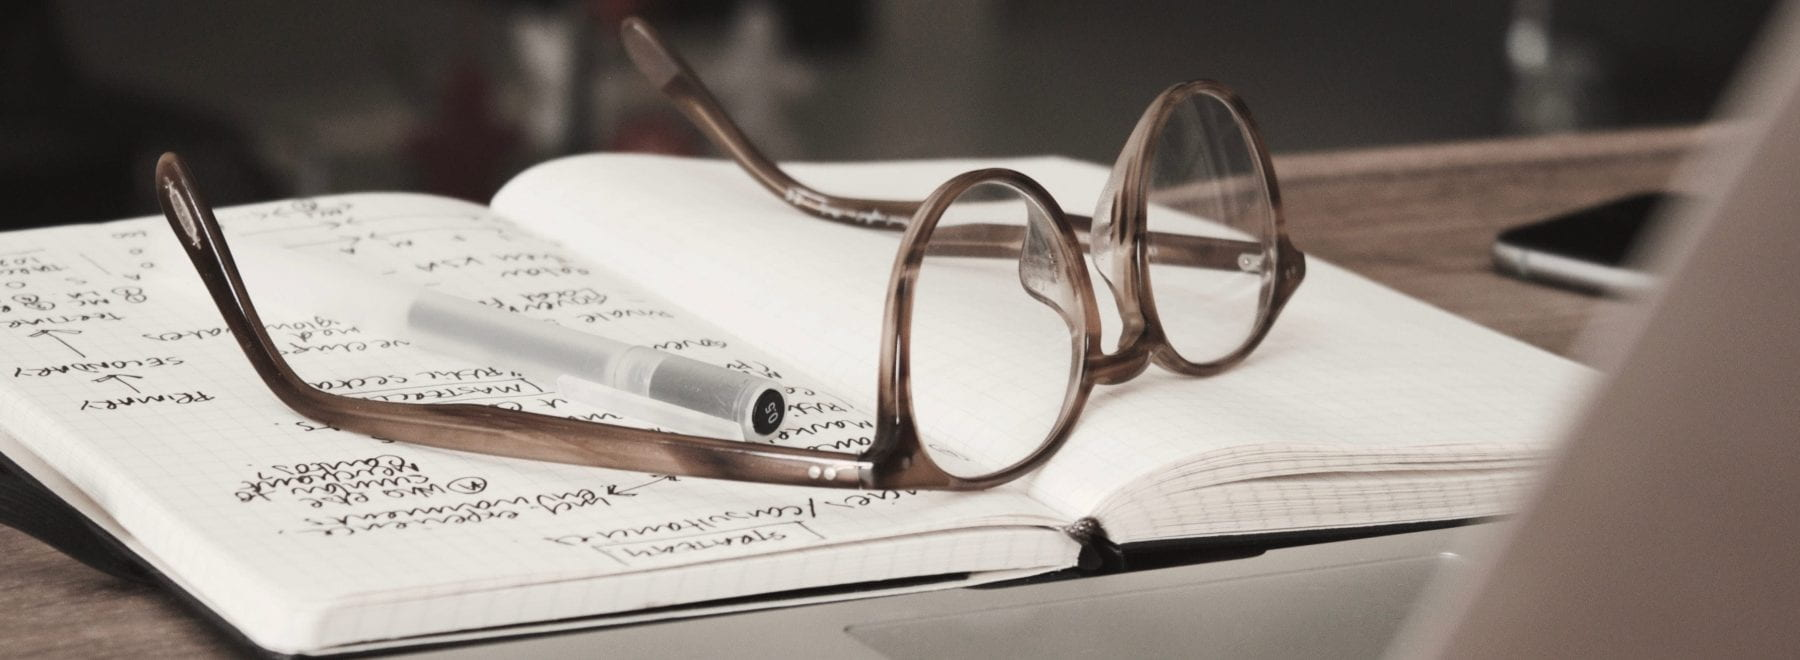 A laptop facing away with a notebook in front and glasses on top